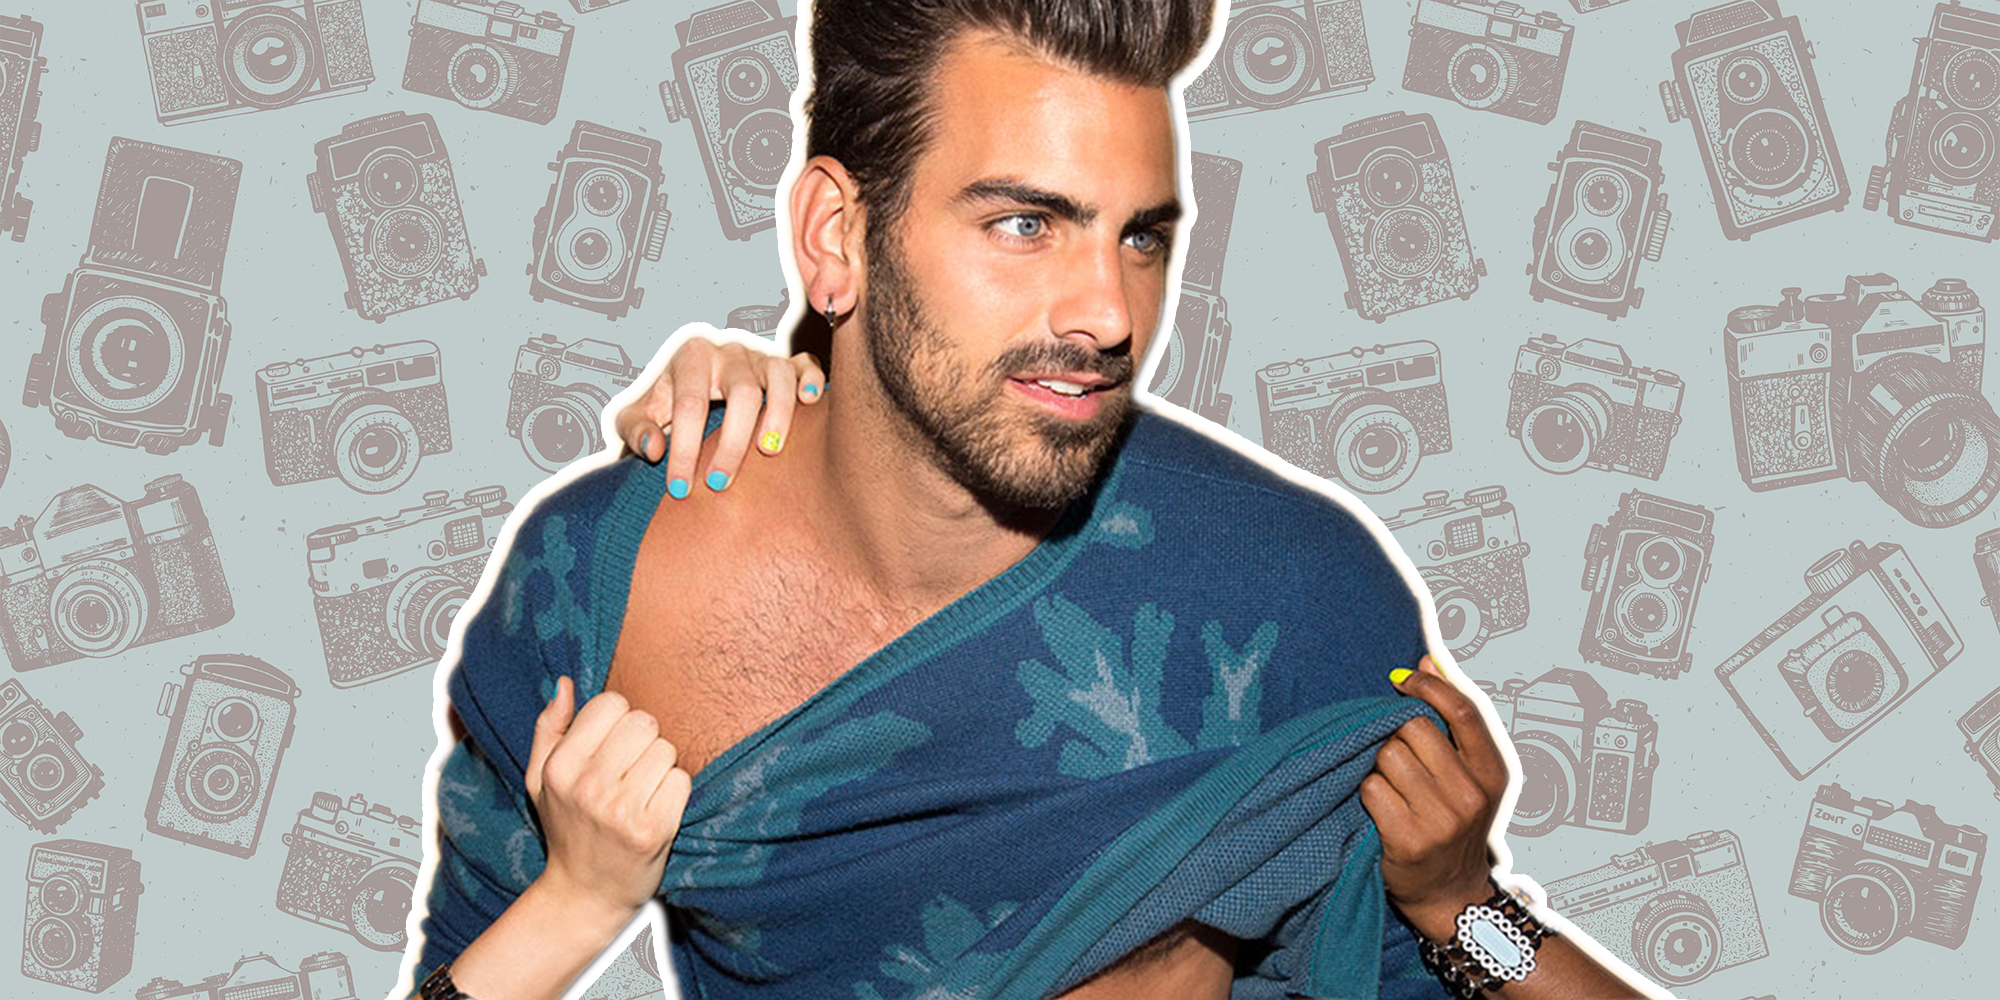 Here's What Happens When 'Top Model' Nyle DiMarco Catches You Sneaking Photos of Him